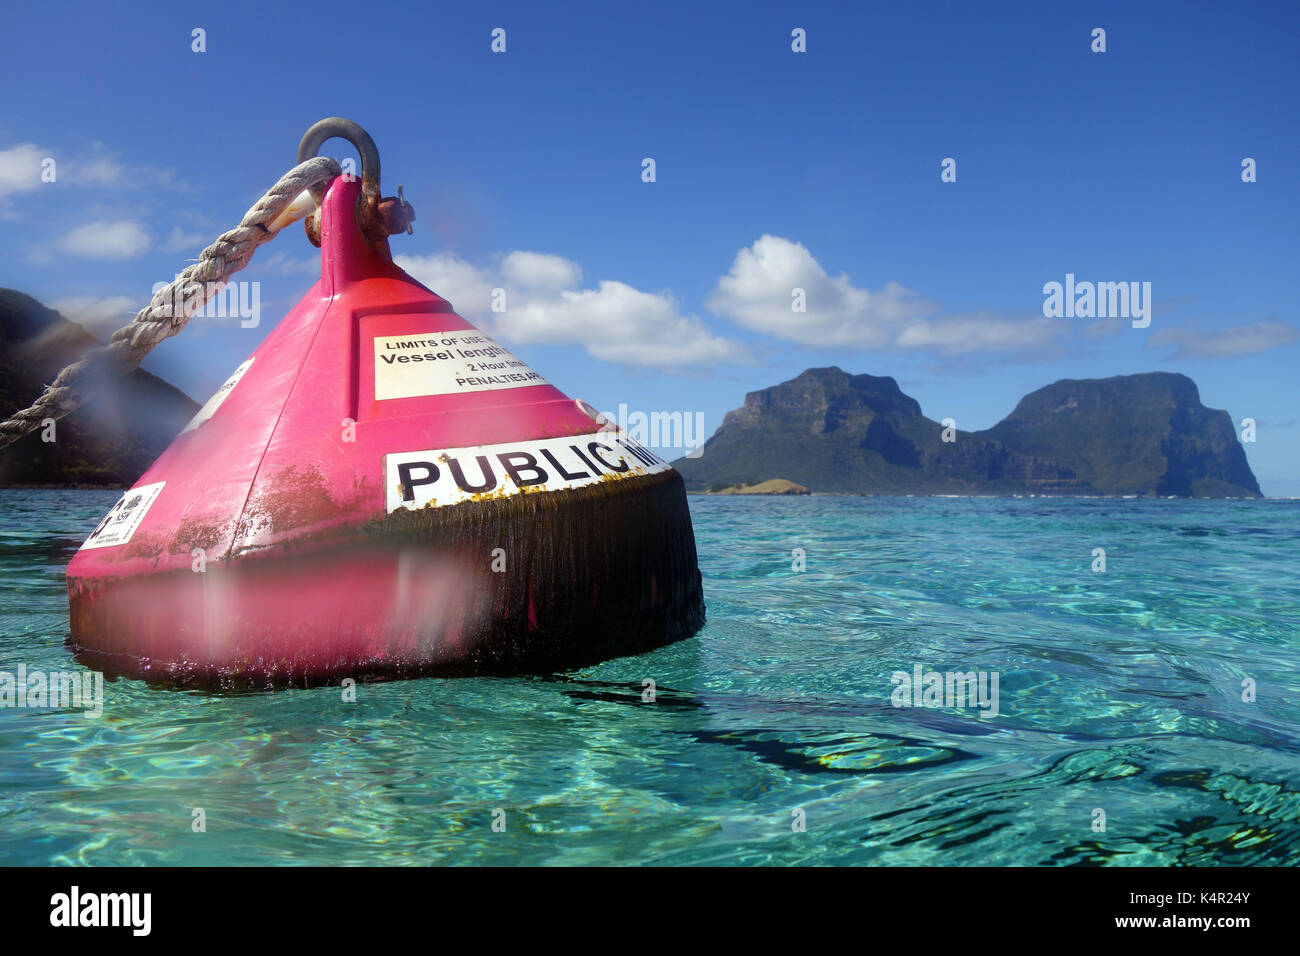 Pink public mooring buoy in North Bay marine protected area, Lord Howe Island lagoon, NSW, Australia. No PR - Stock Image